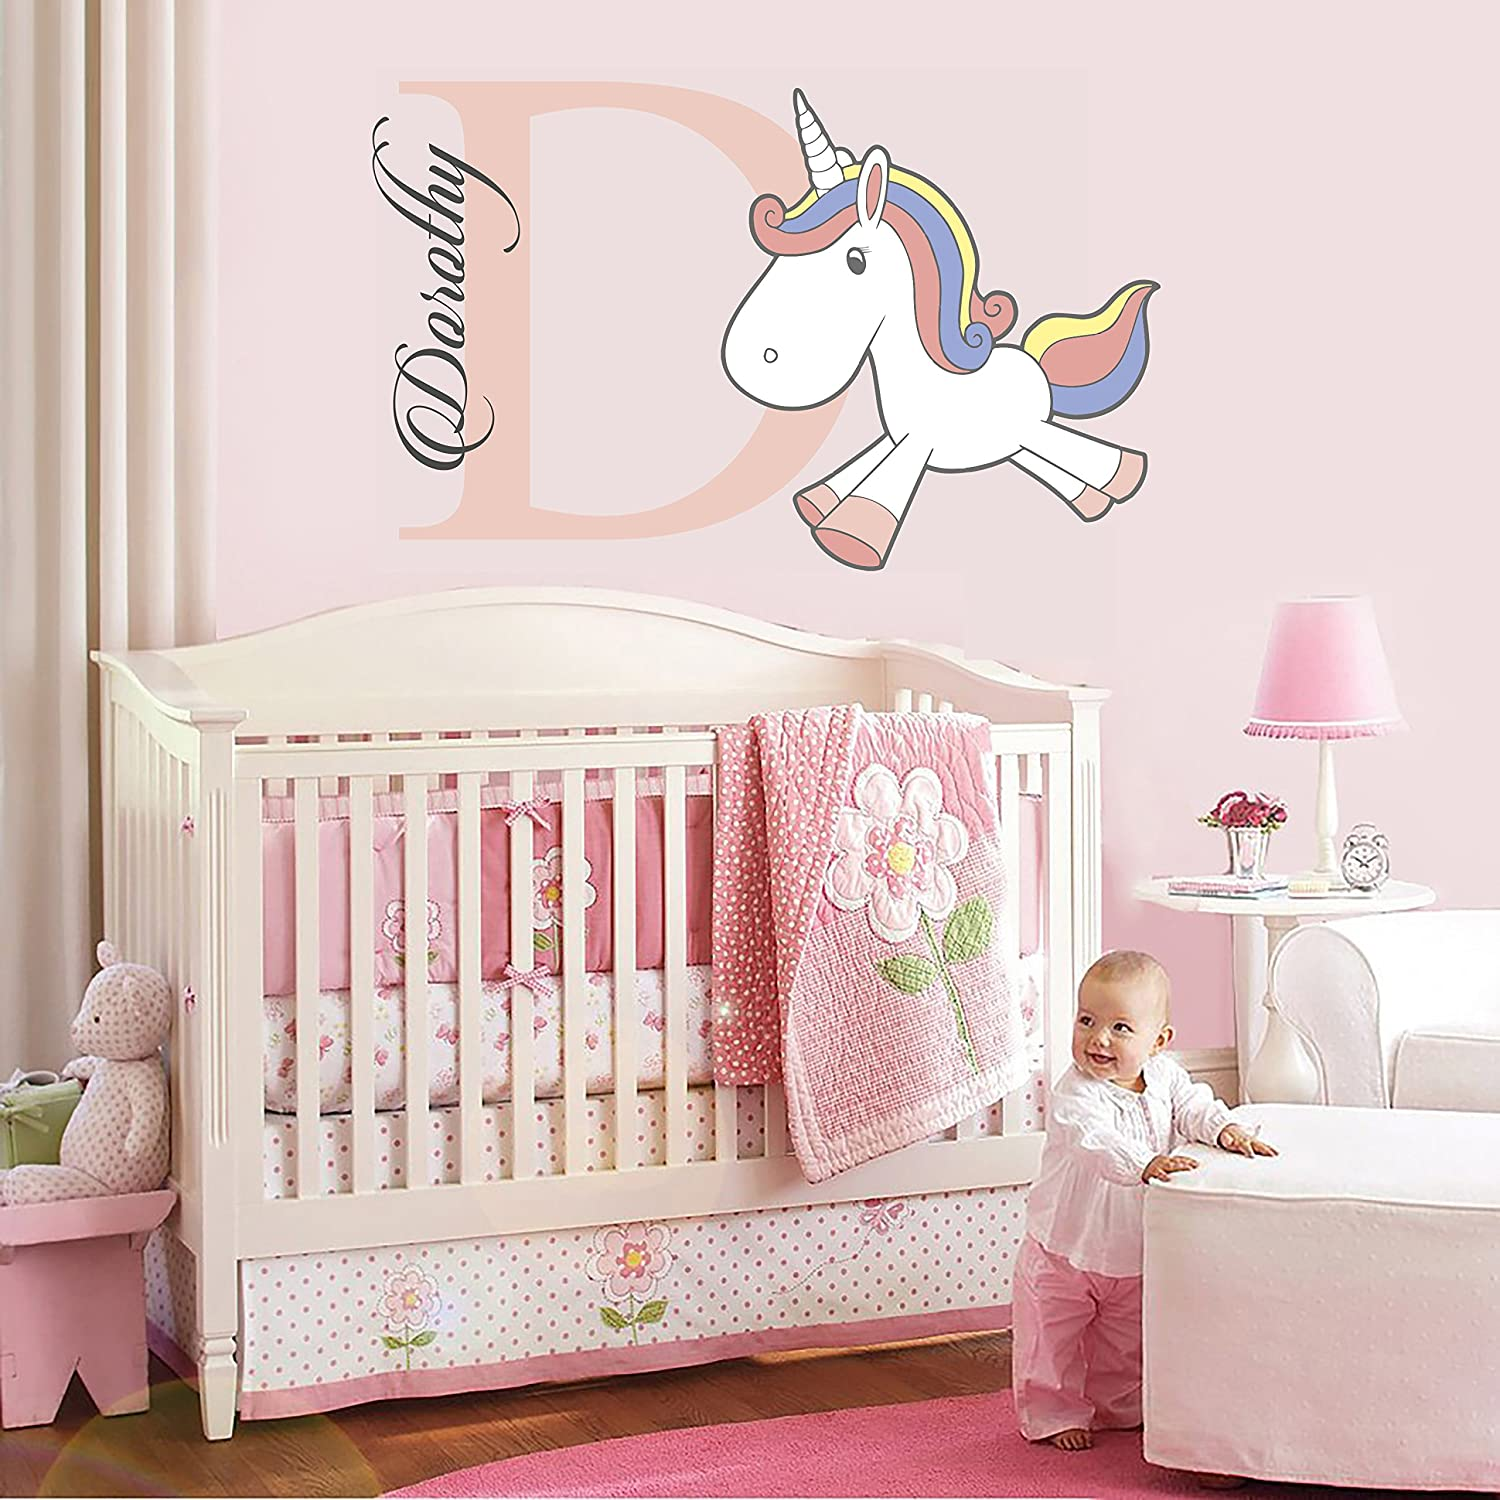 "e-Graphic Design Inc Custom Name and Initial Unicorn Nursery - Baby Boy Girl Decoration - Wall Decal Sticker for Home Interior Decoration Car Laptop (M339) (Wide 30"" x 18"" Height)"